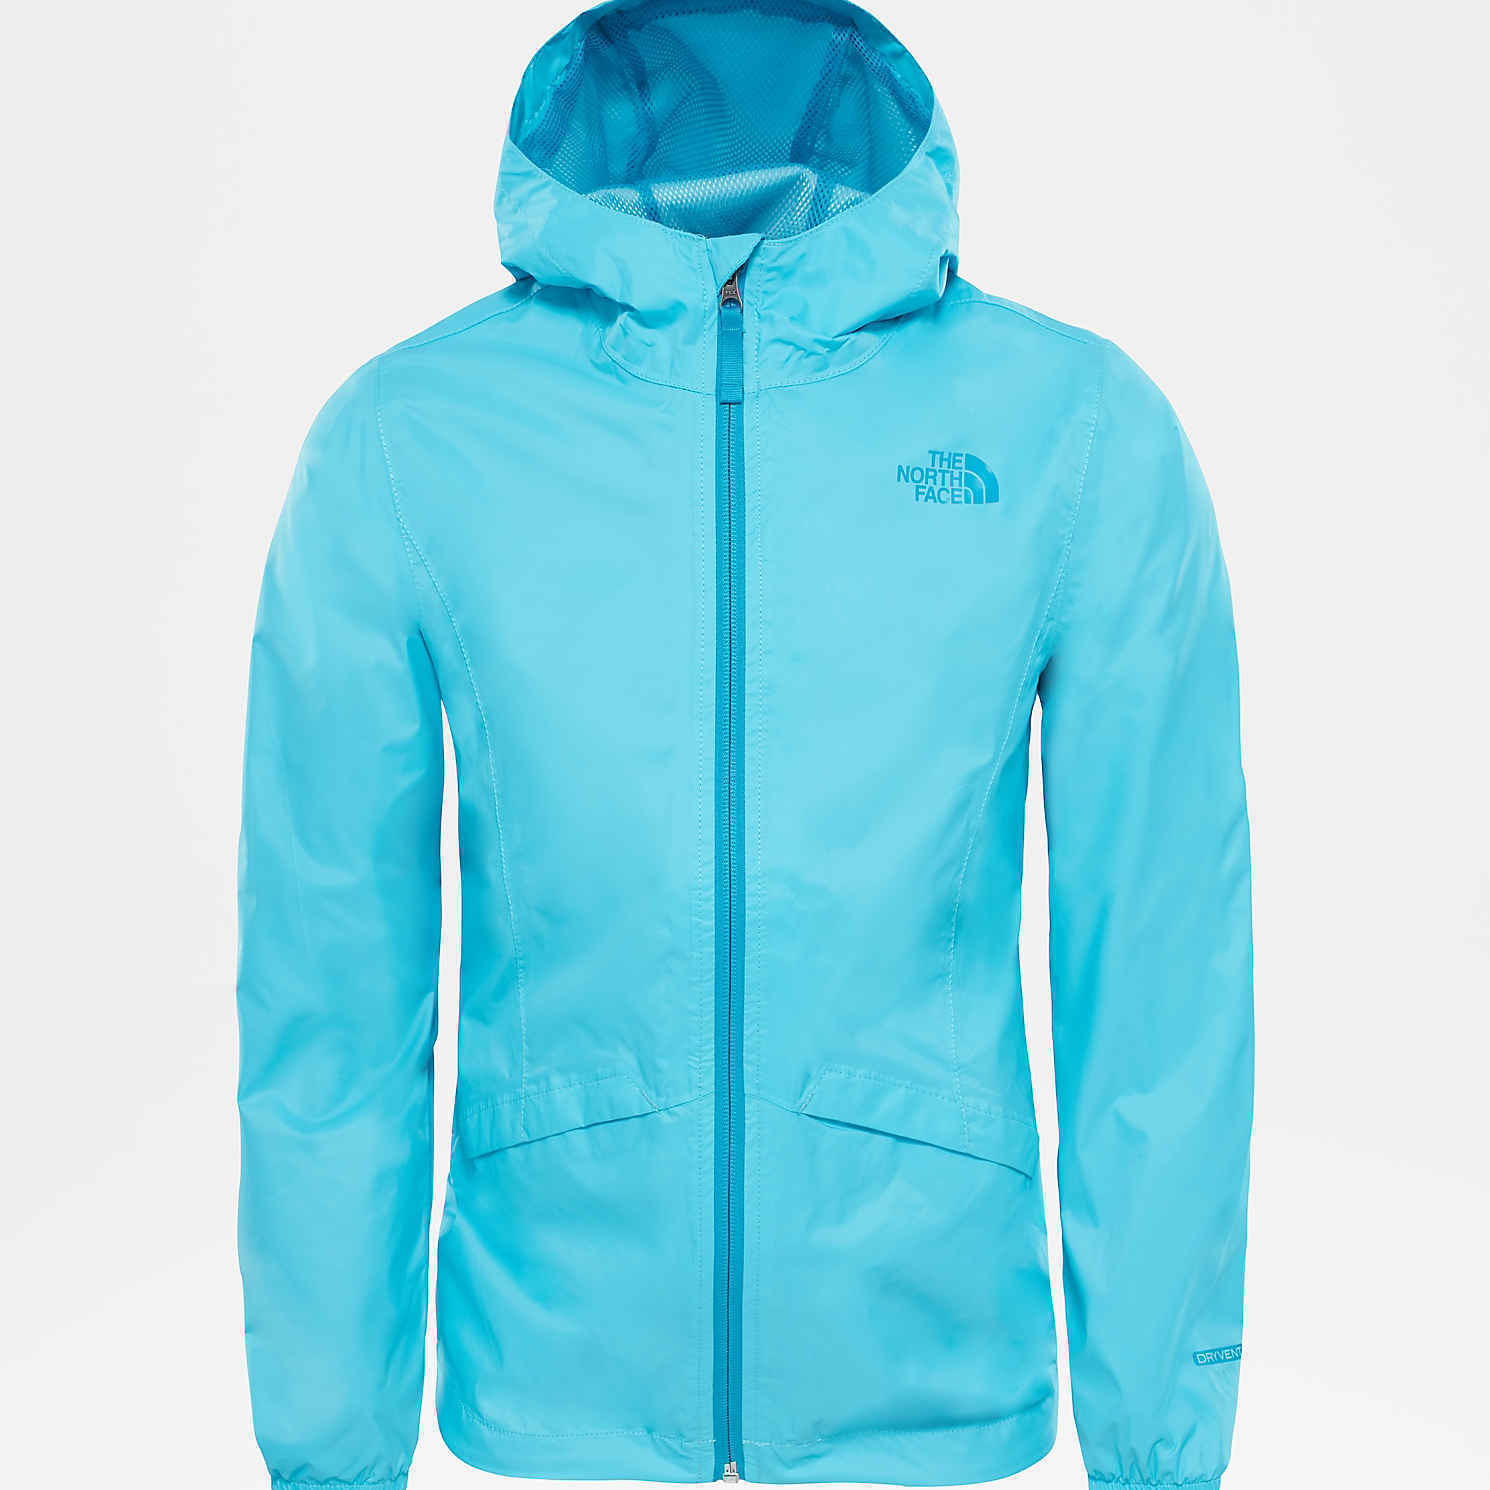 15d16f6f Details about The North Face Girls' Zipline Rain Jacket (Blue Curacao)